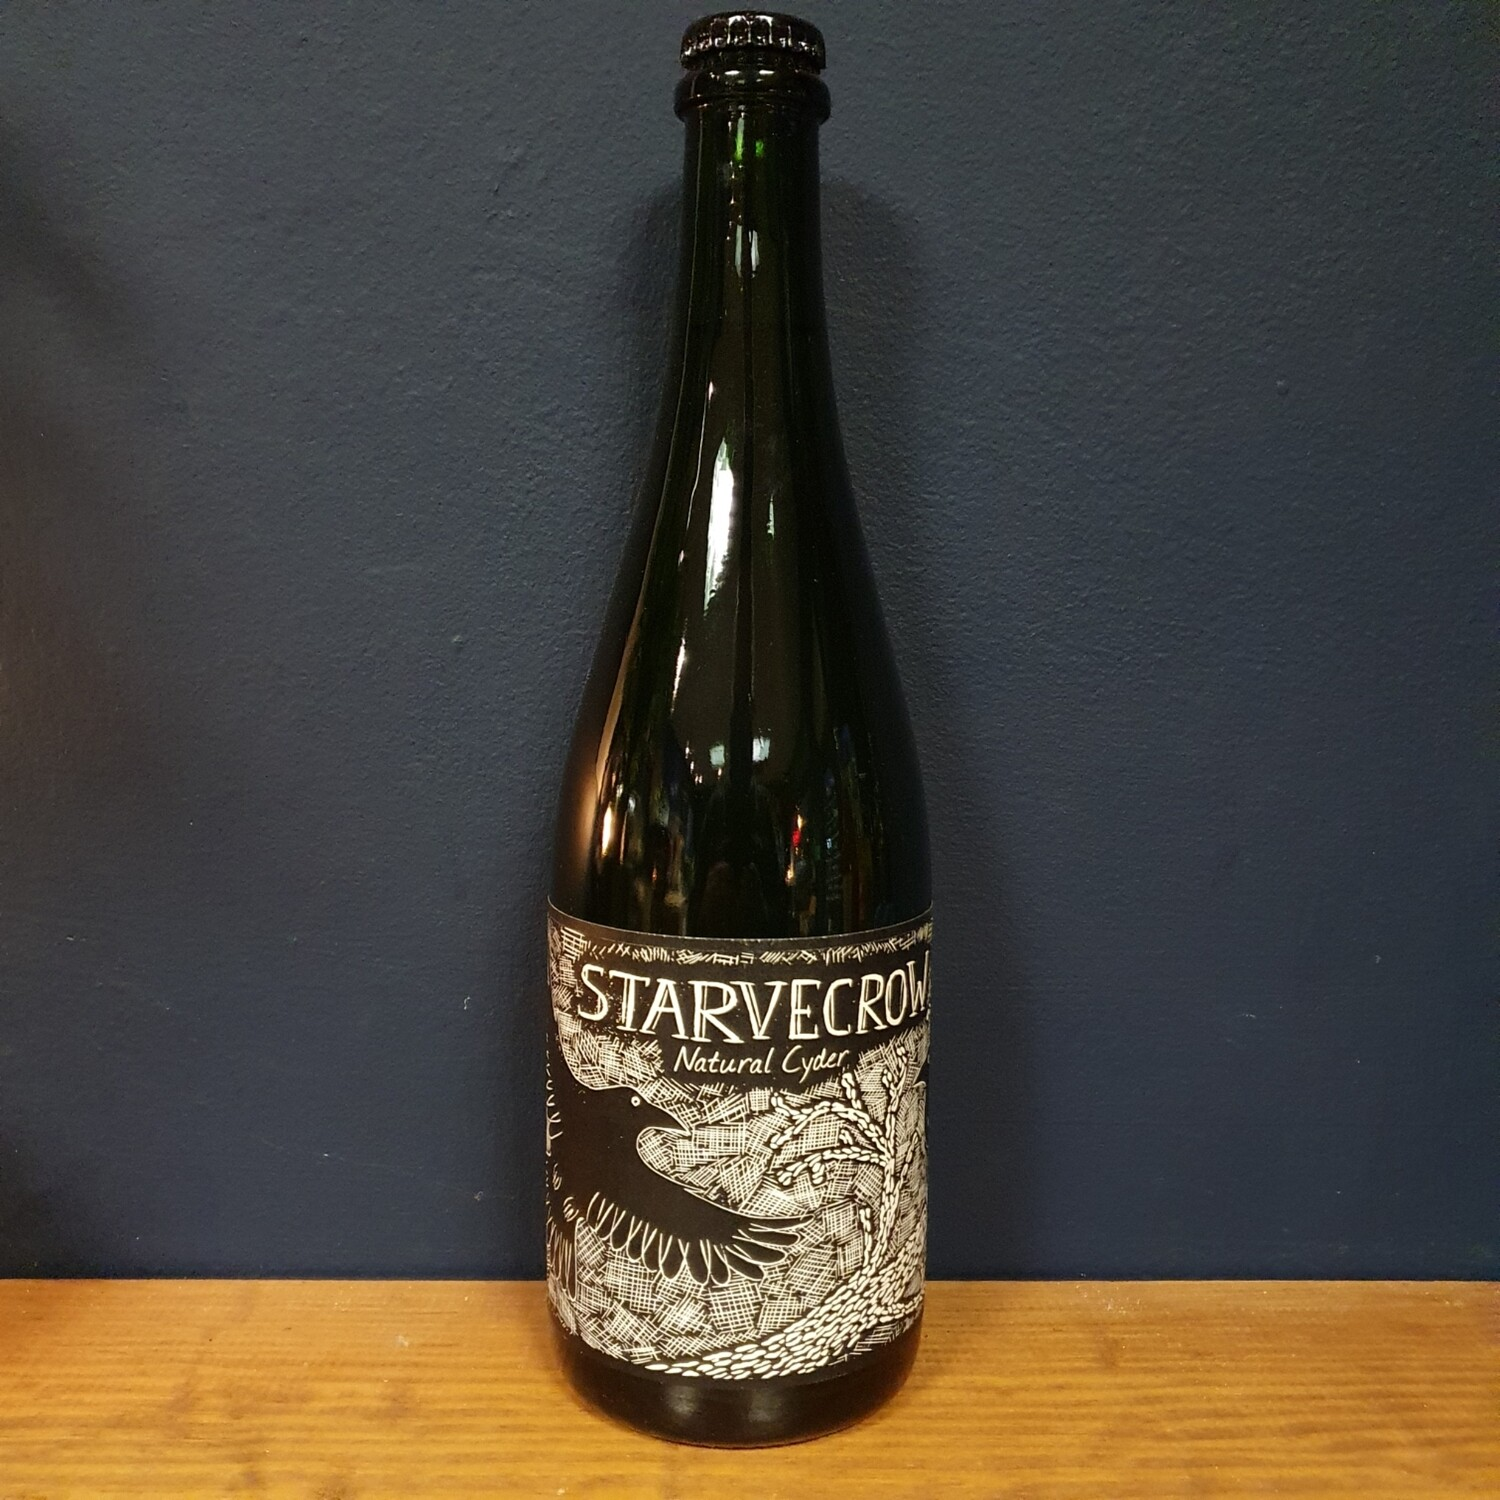 Starvecrow  - Natural Cider 2019 (750ml)